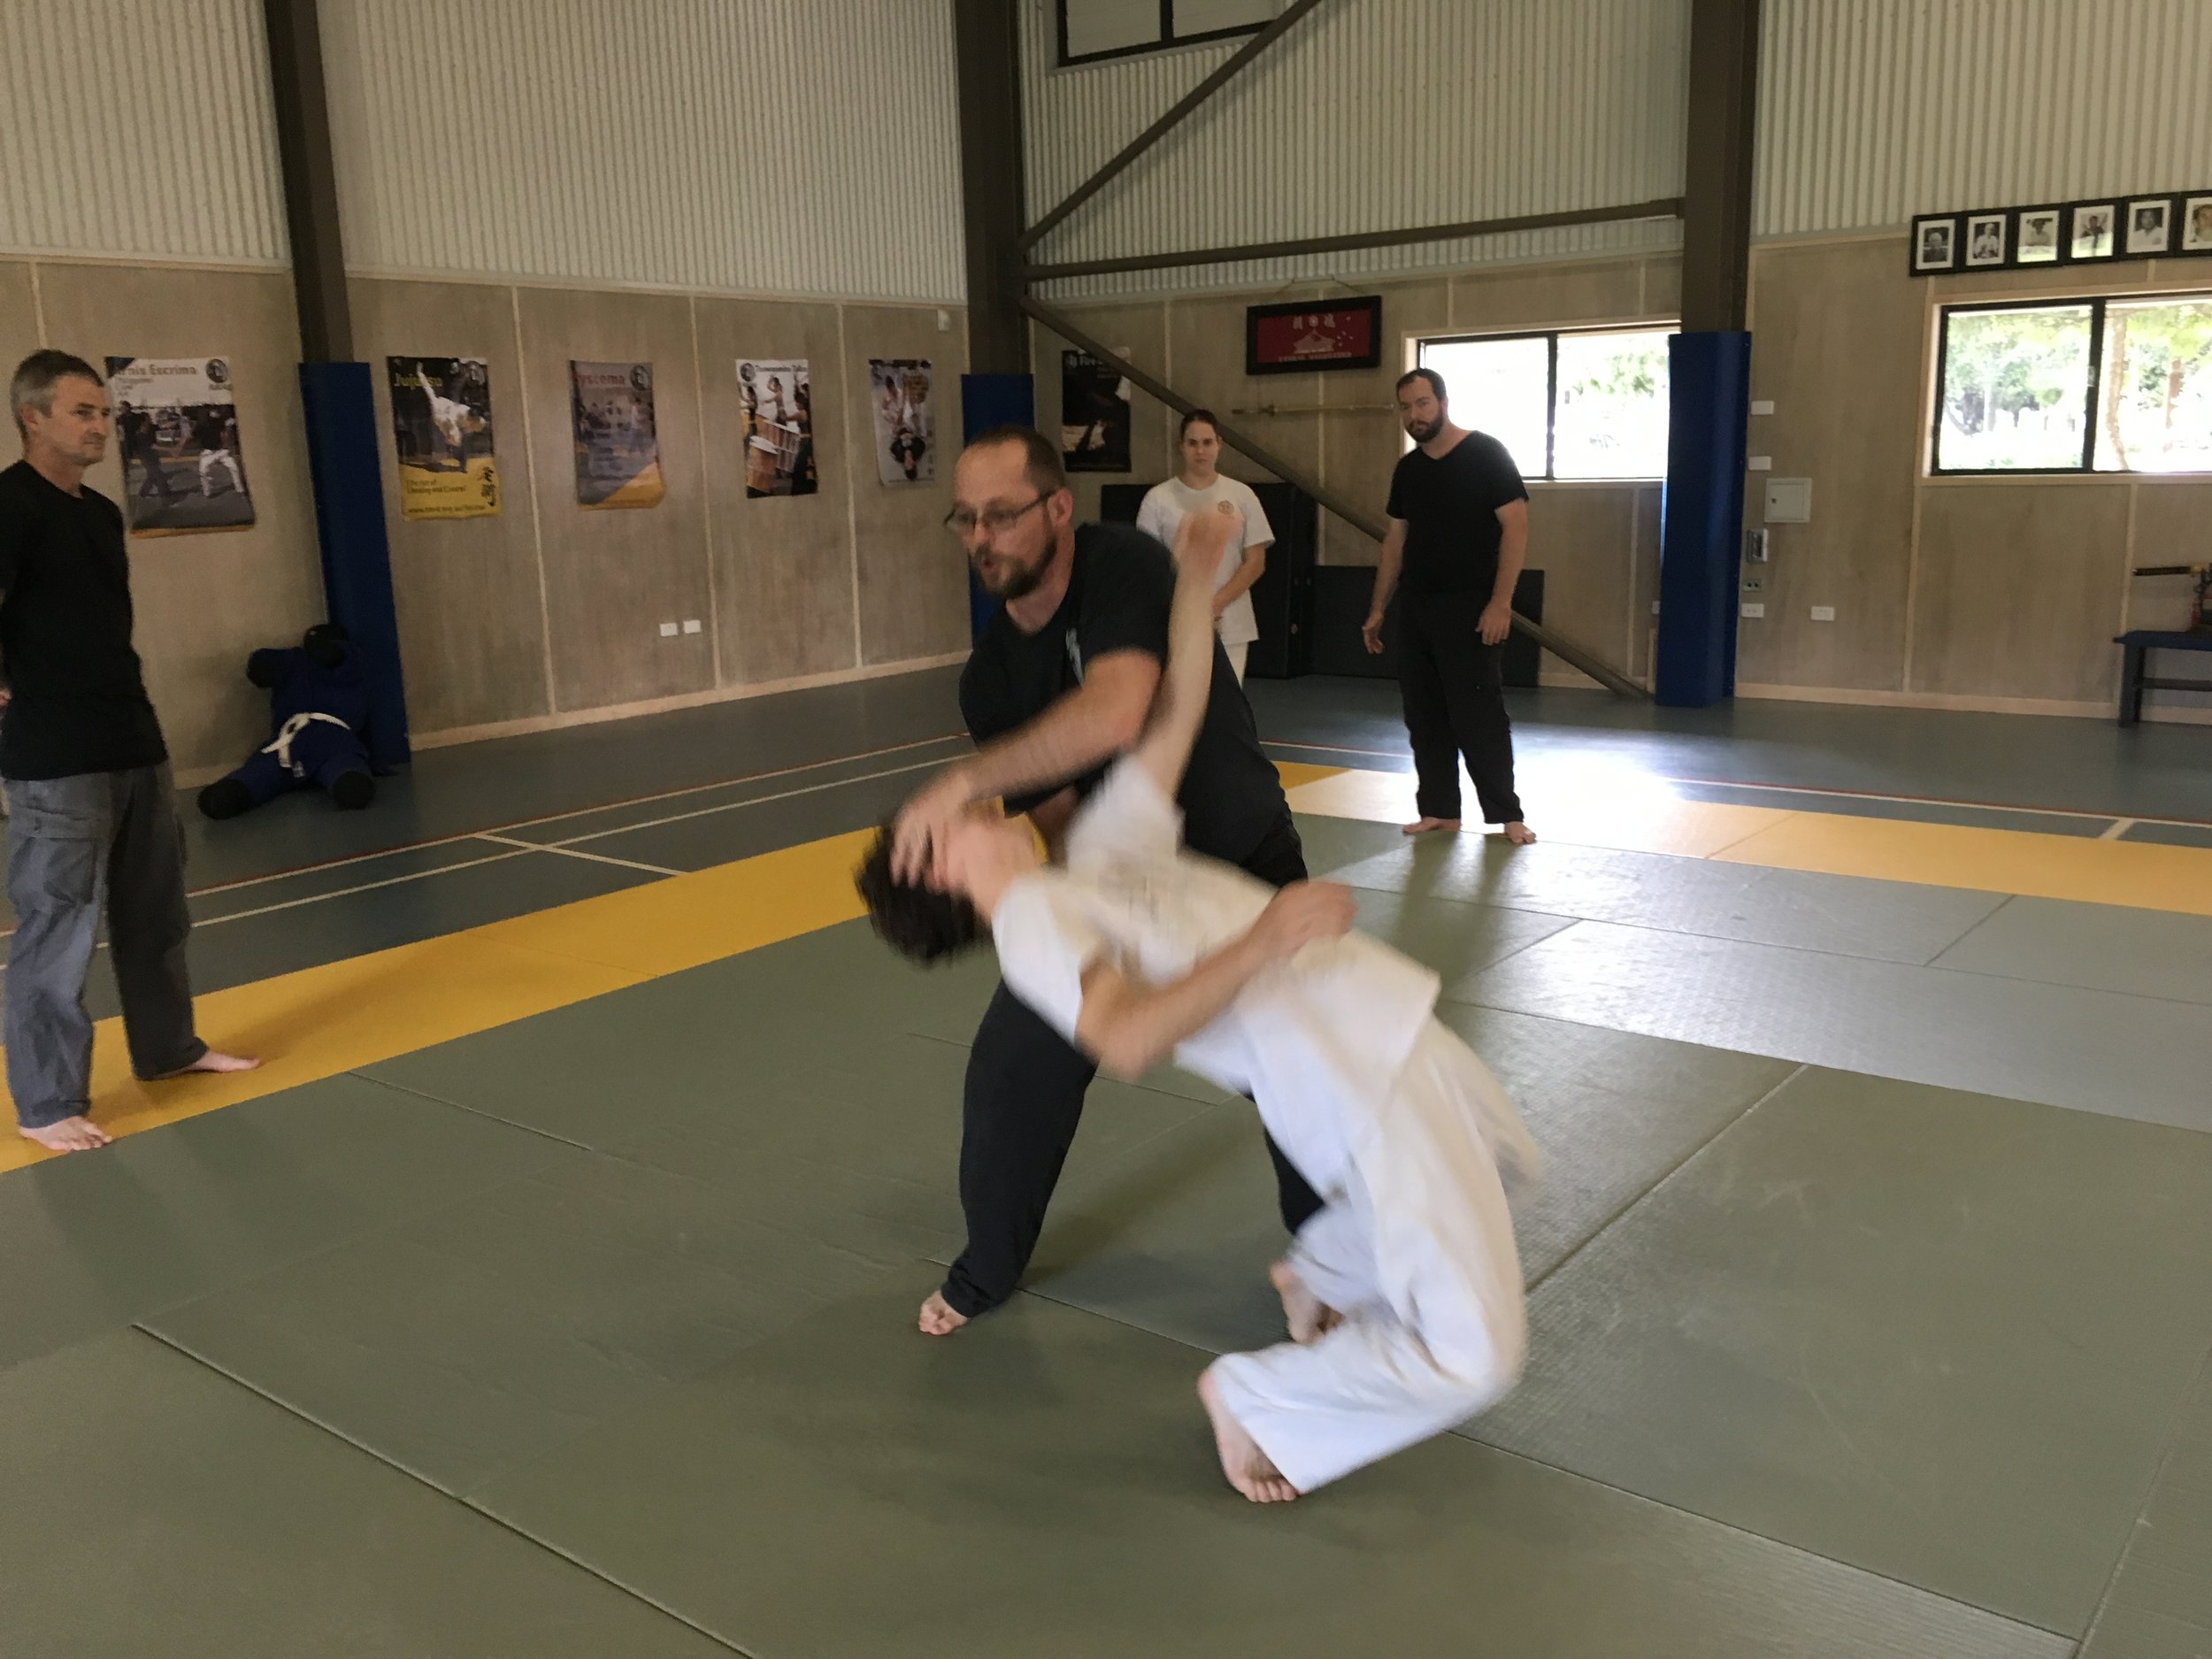 Using wave motion in Systema